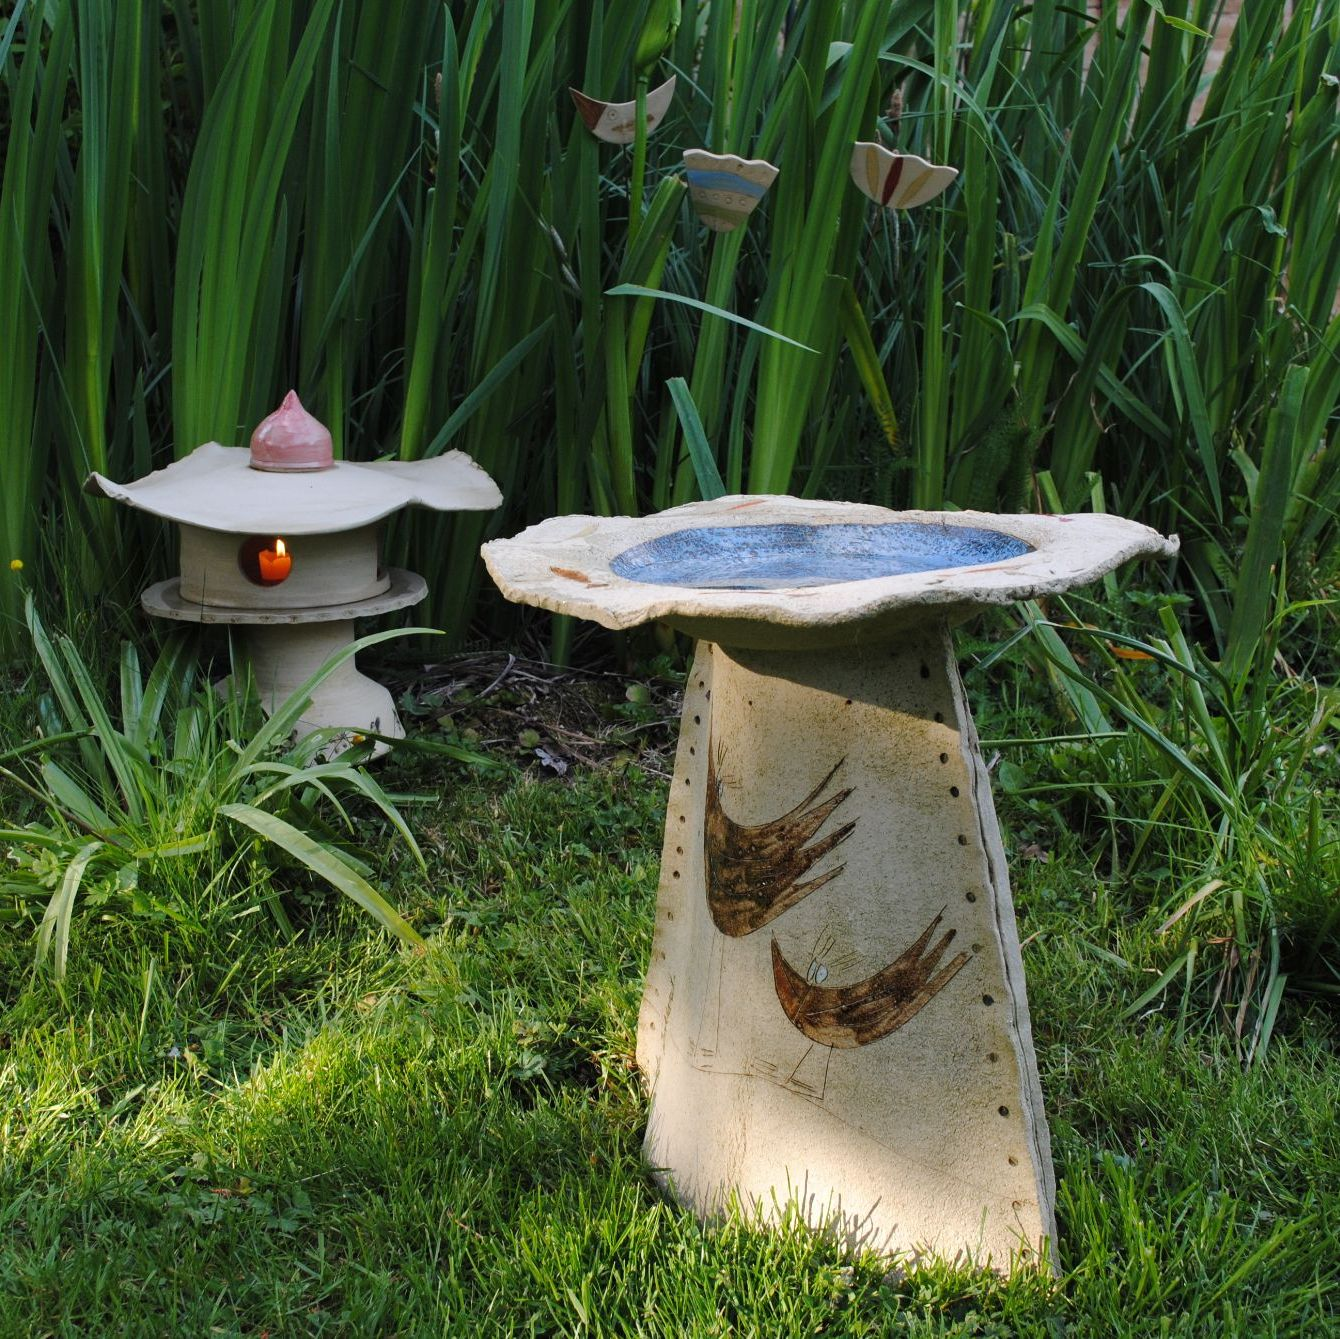 Ceramics for outdoor, including a bird bath, large lantern and garden/pot stakes.